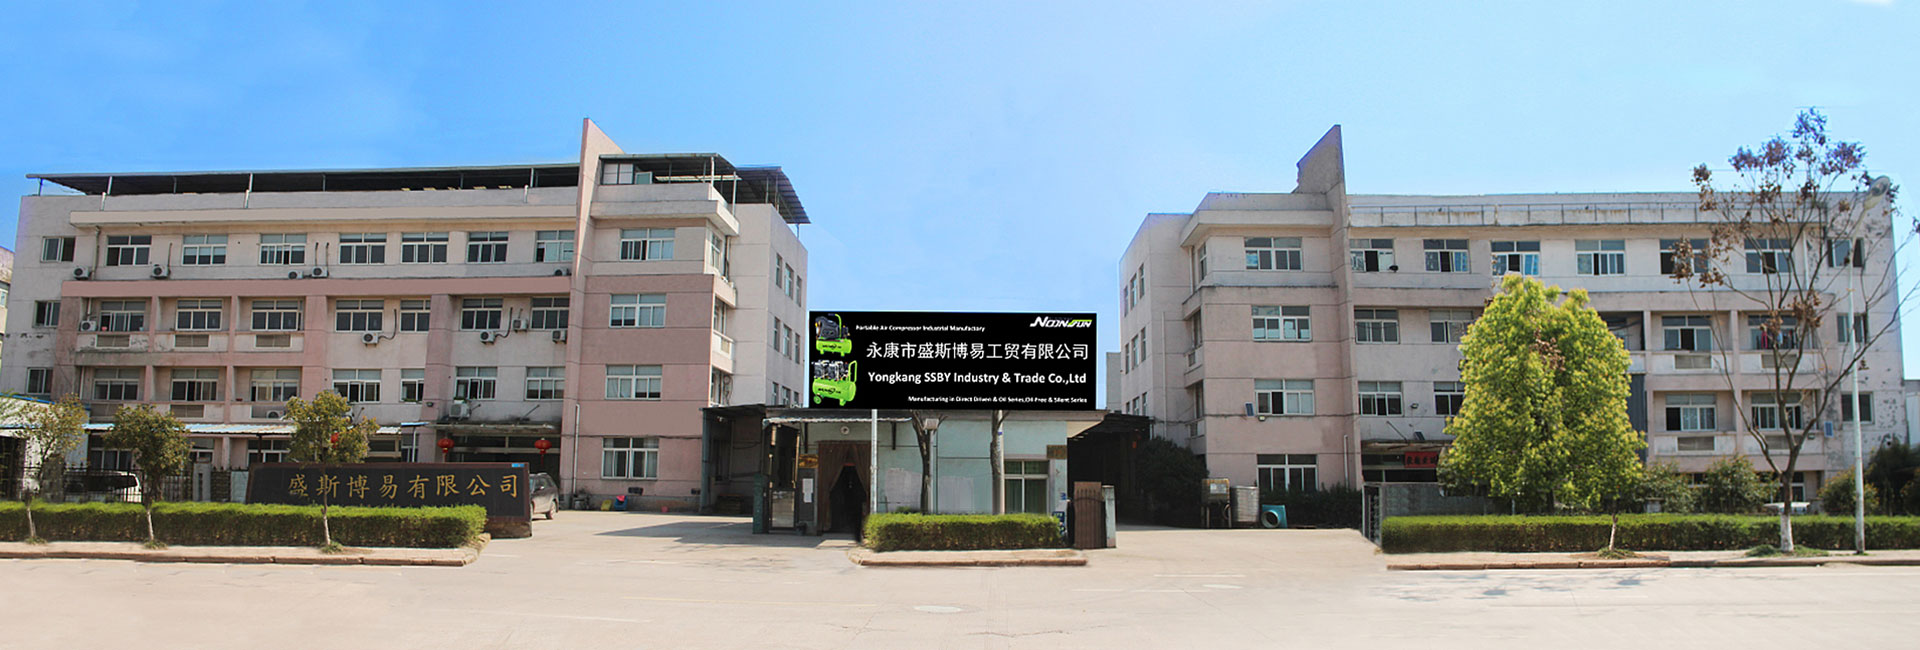 Yongkang SSBY Industry & Trade Co.,Ltd